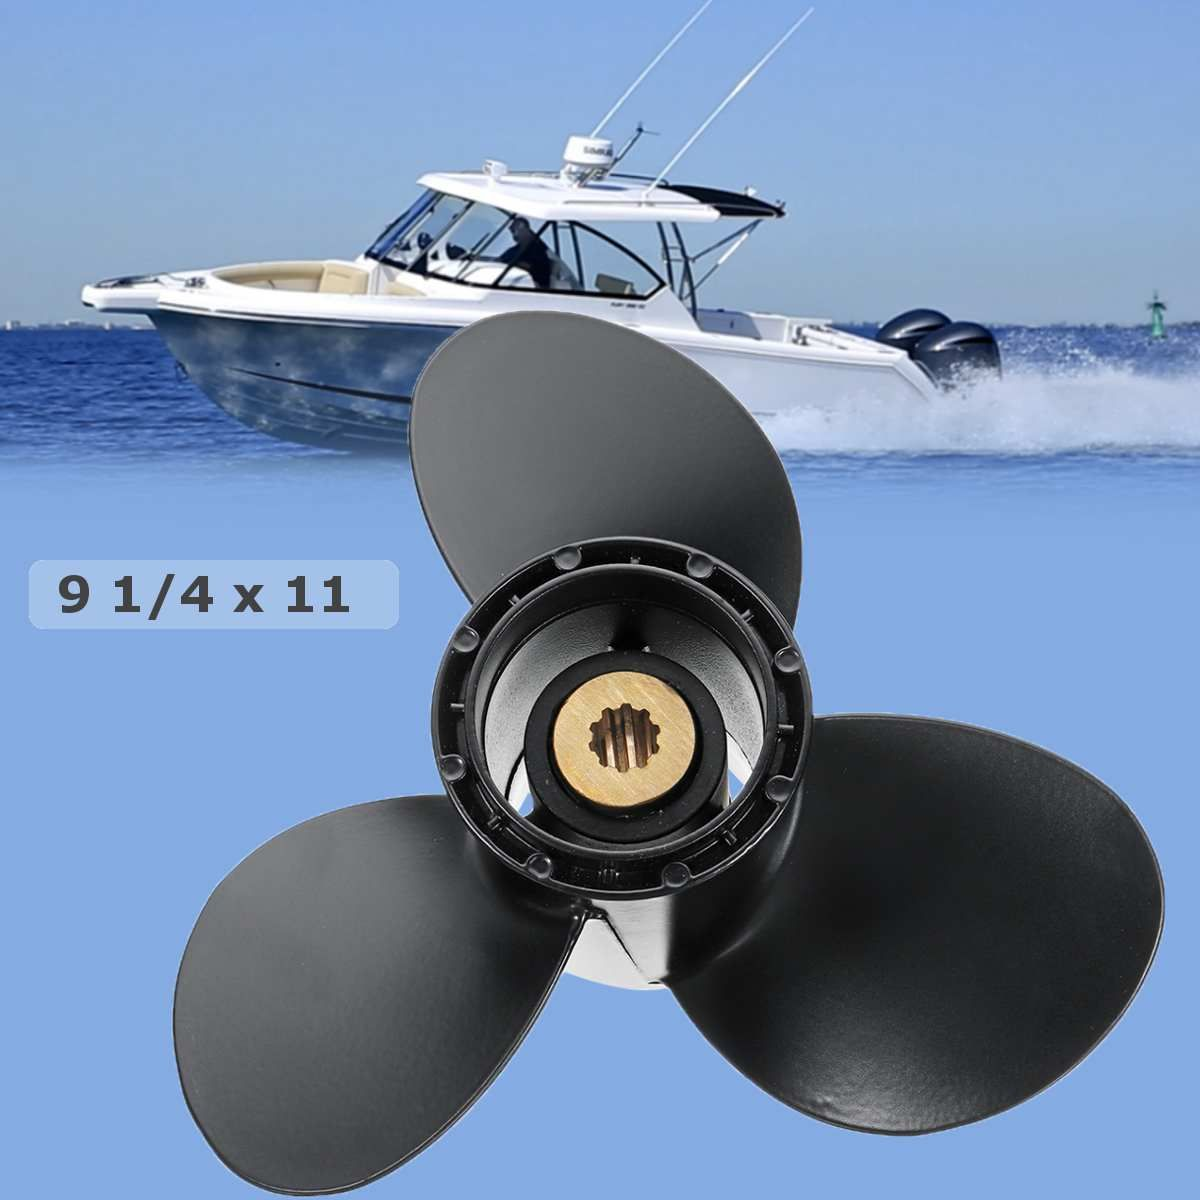 9 1/4 x 11 Aluminum Boat Outboard Propeller for Suzuki 9.9-15HP 58100-93743-019 Aluminium Alloy Black 3 Blades 10 Spline Tooth